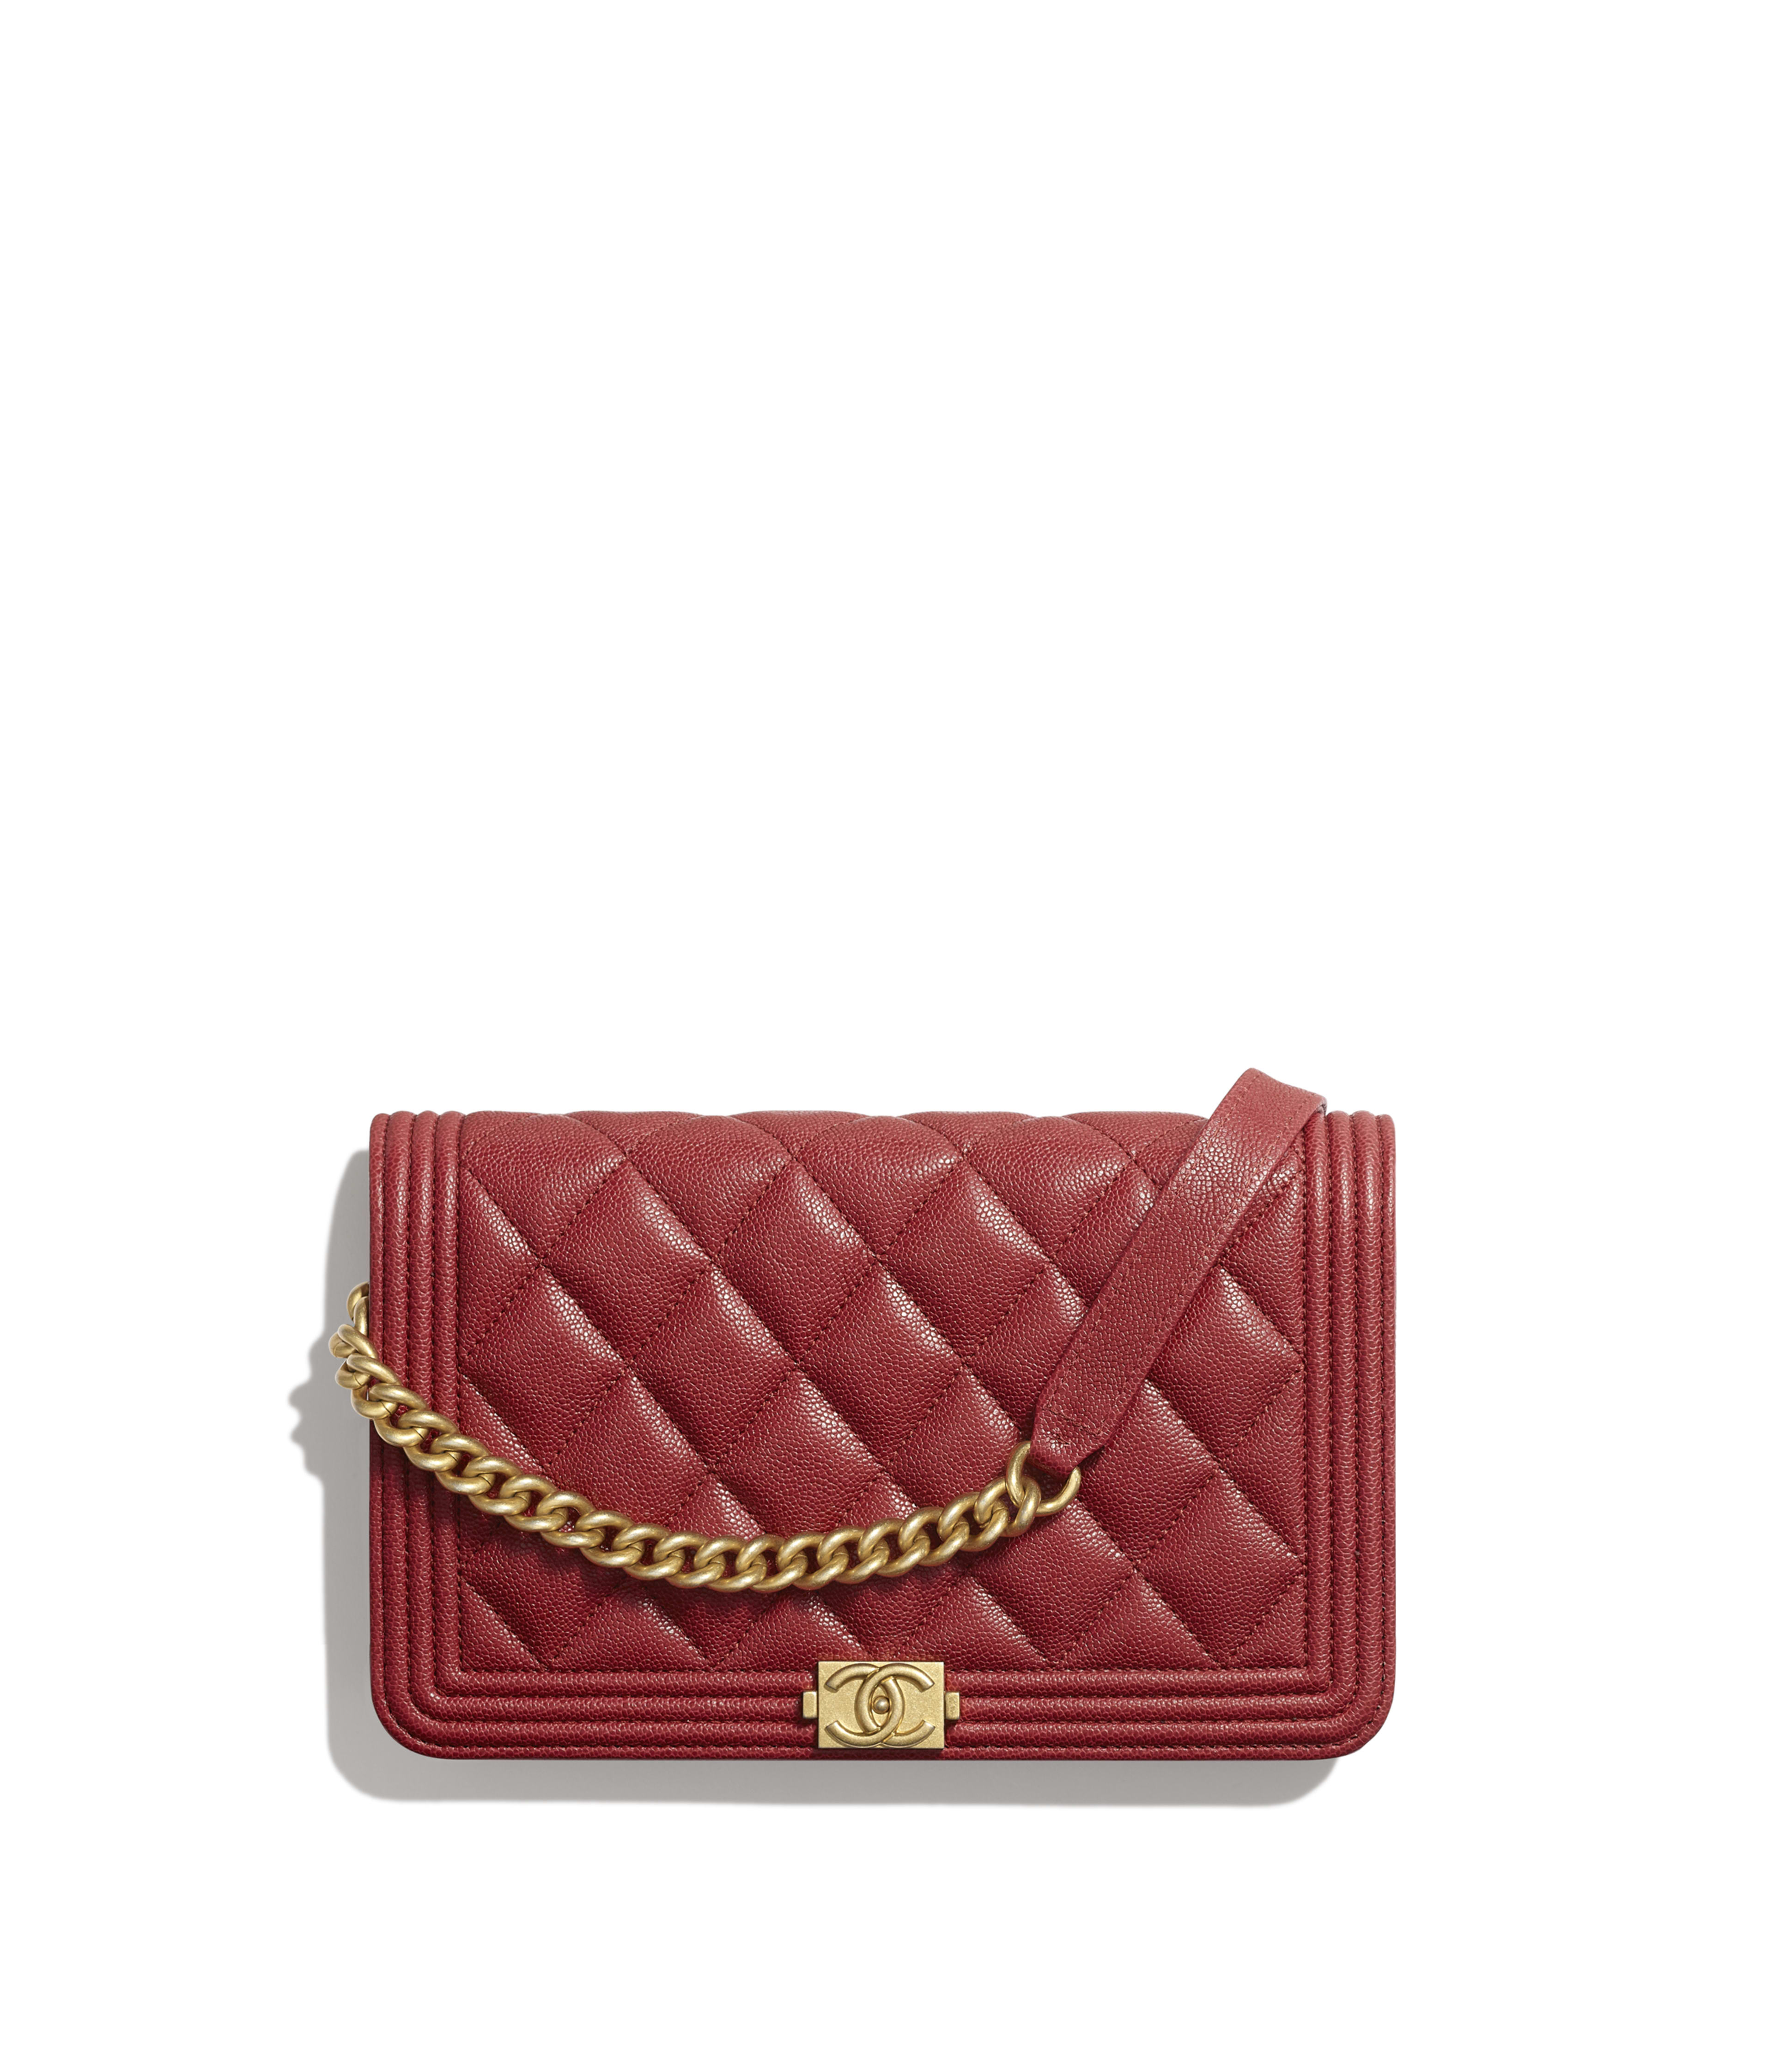 0e2aa9f63c73 BOY CHANEL Wallet on Chain Grained Calfskin & Gold-Tone Metal, Red Ref.  A81969Y83621N4711